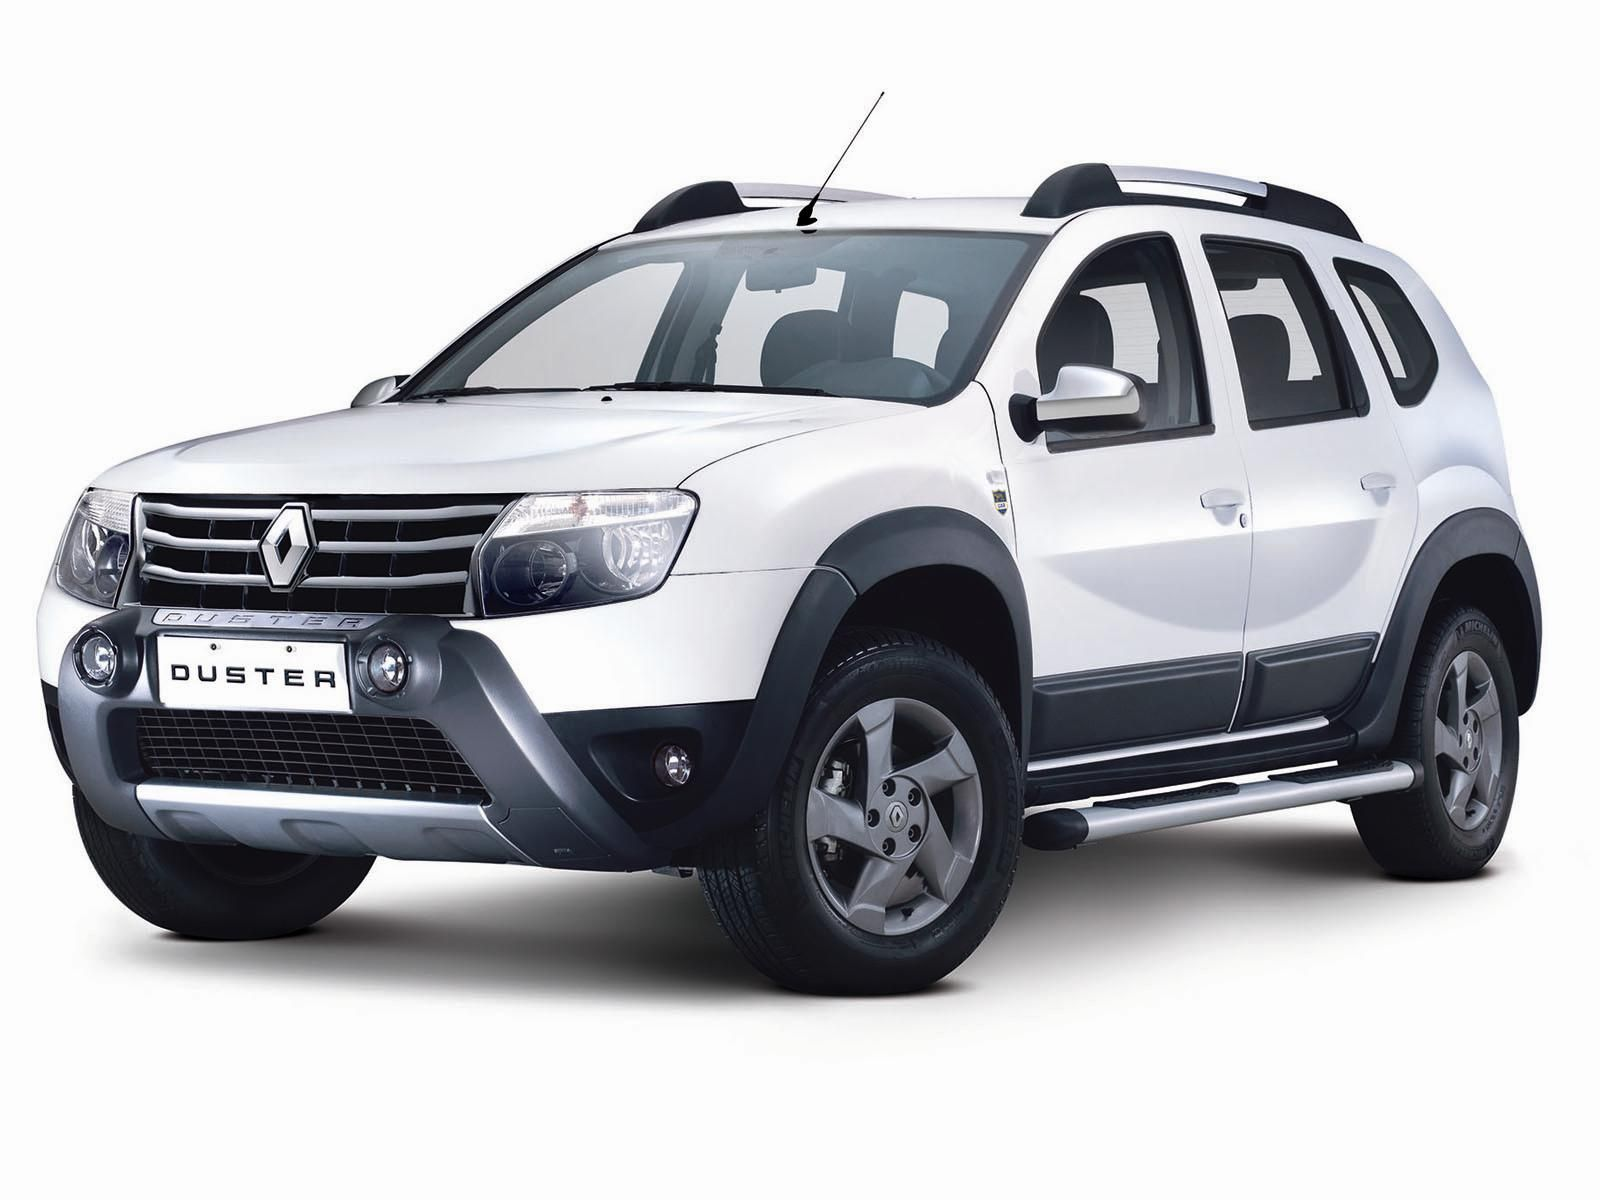 New compact suv cars in india in 2016 looking for classy models in the suv segment